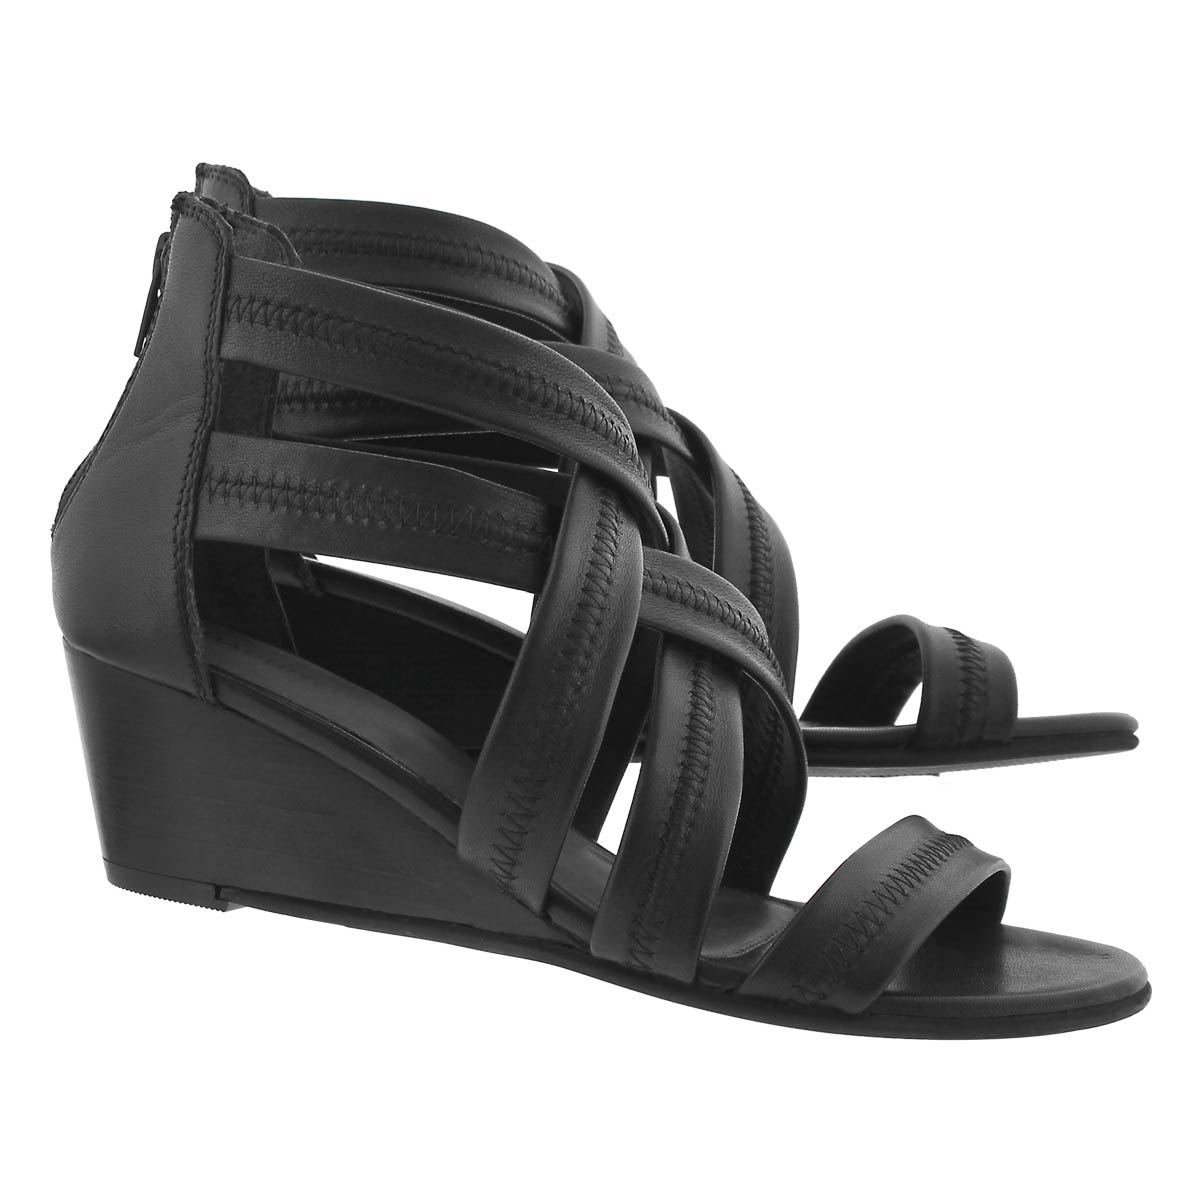 Lds Fanny black lthr wedge dress sandal